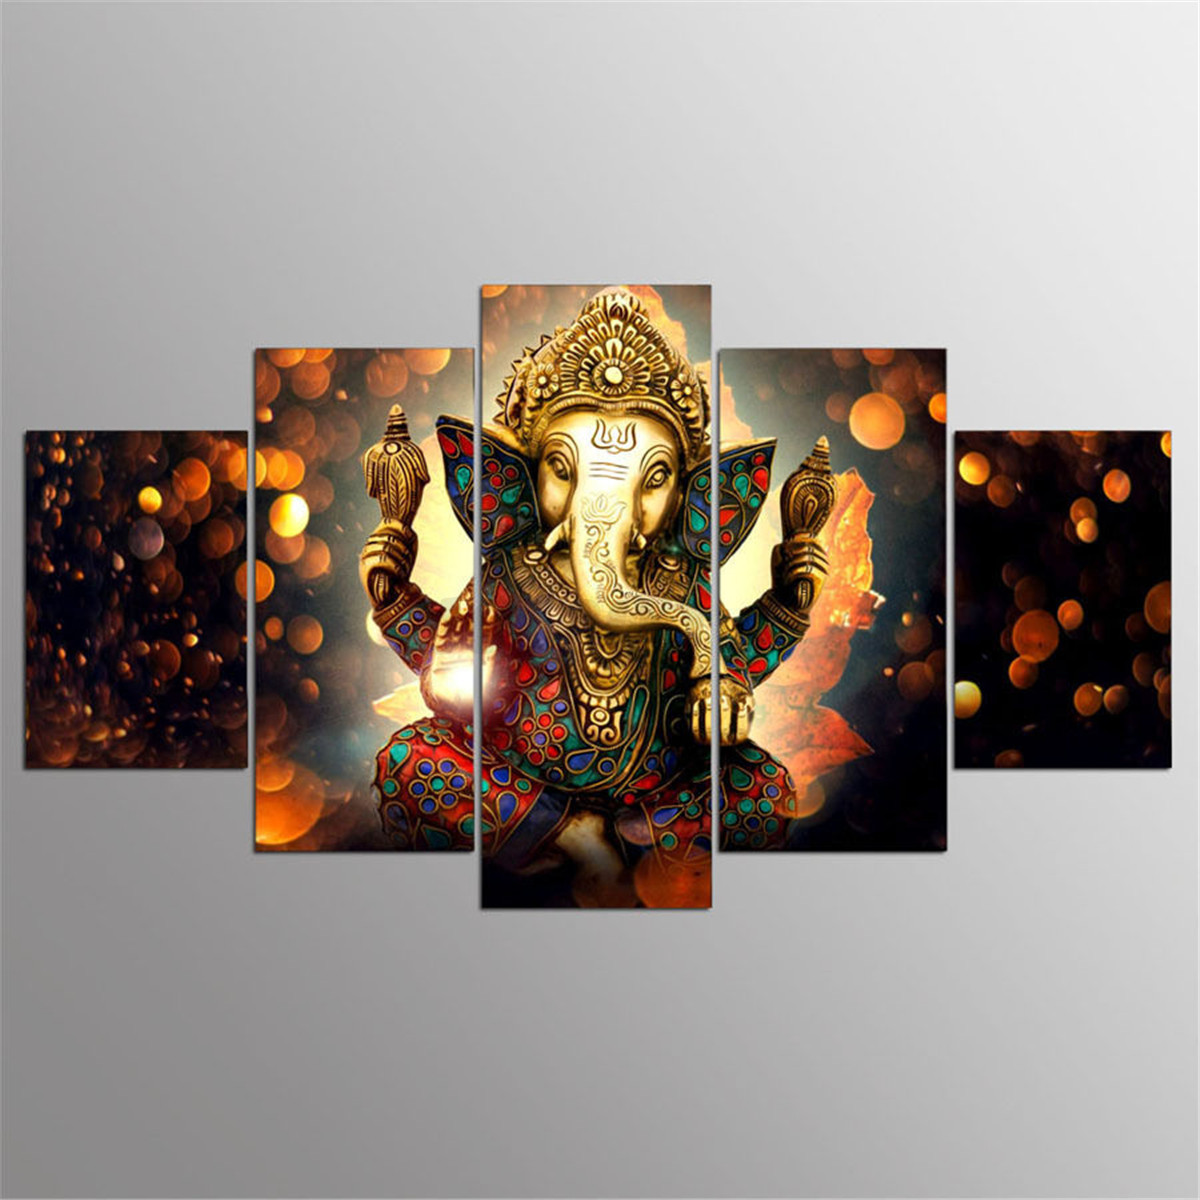 5pcs ganesha elk canvas painting print modern wall art poster home wall decor ebay. Black Bedroom Furniture Sets. Home Design Ideas